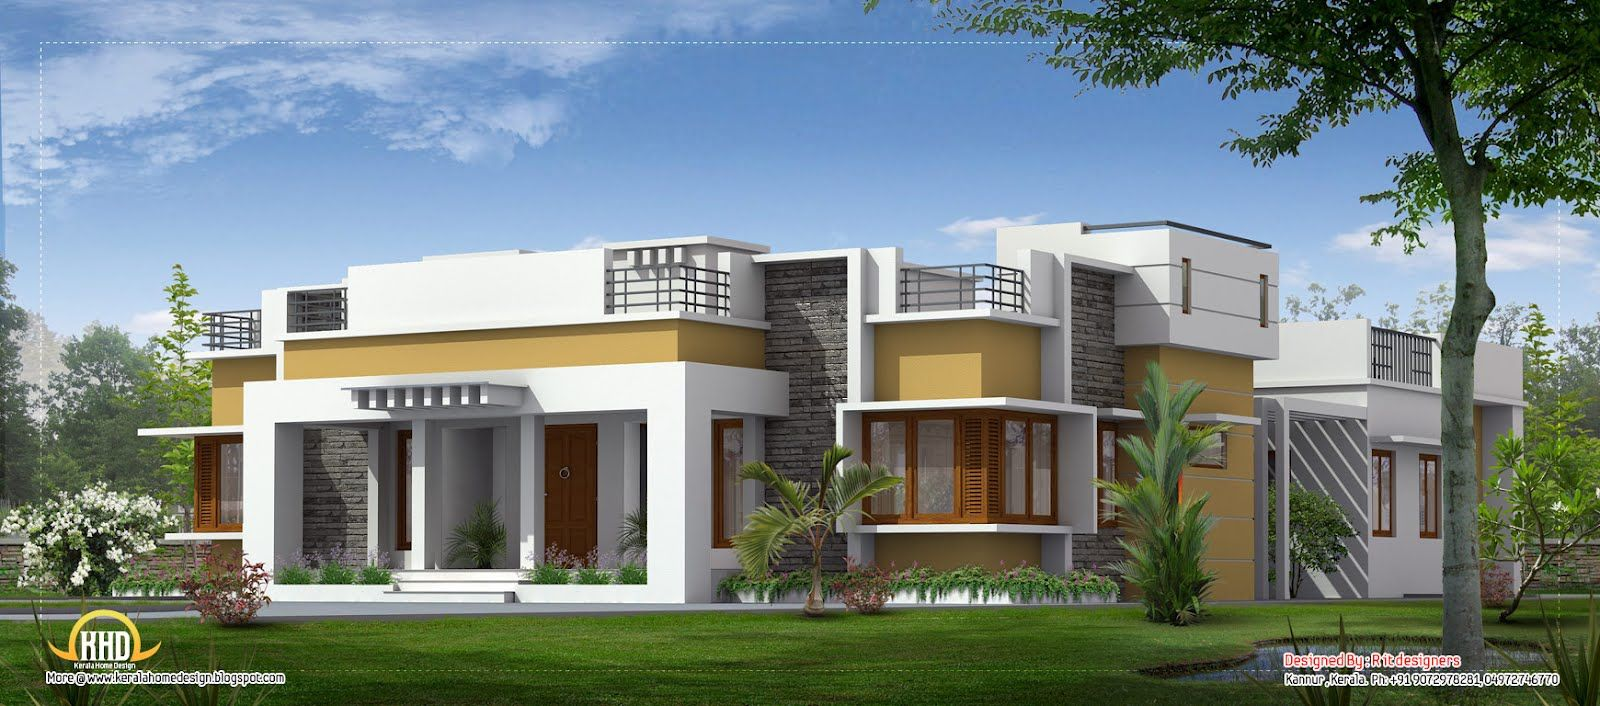 Single level designer home single floor house plans for Big house design ideas